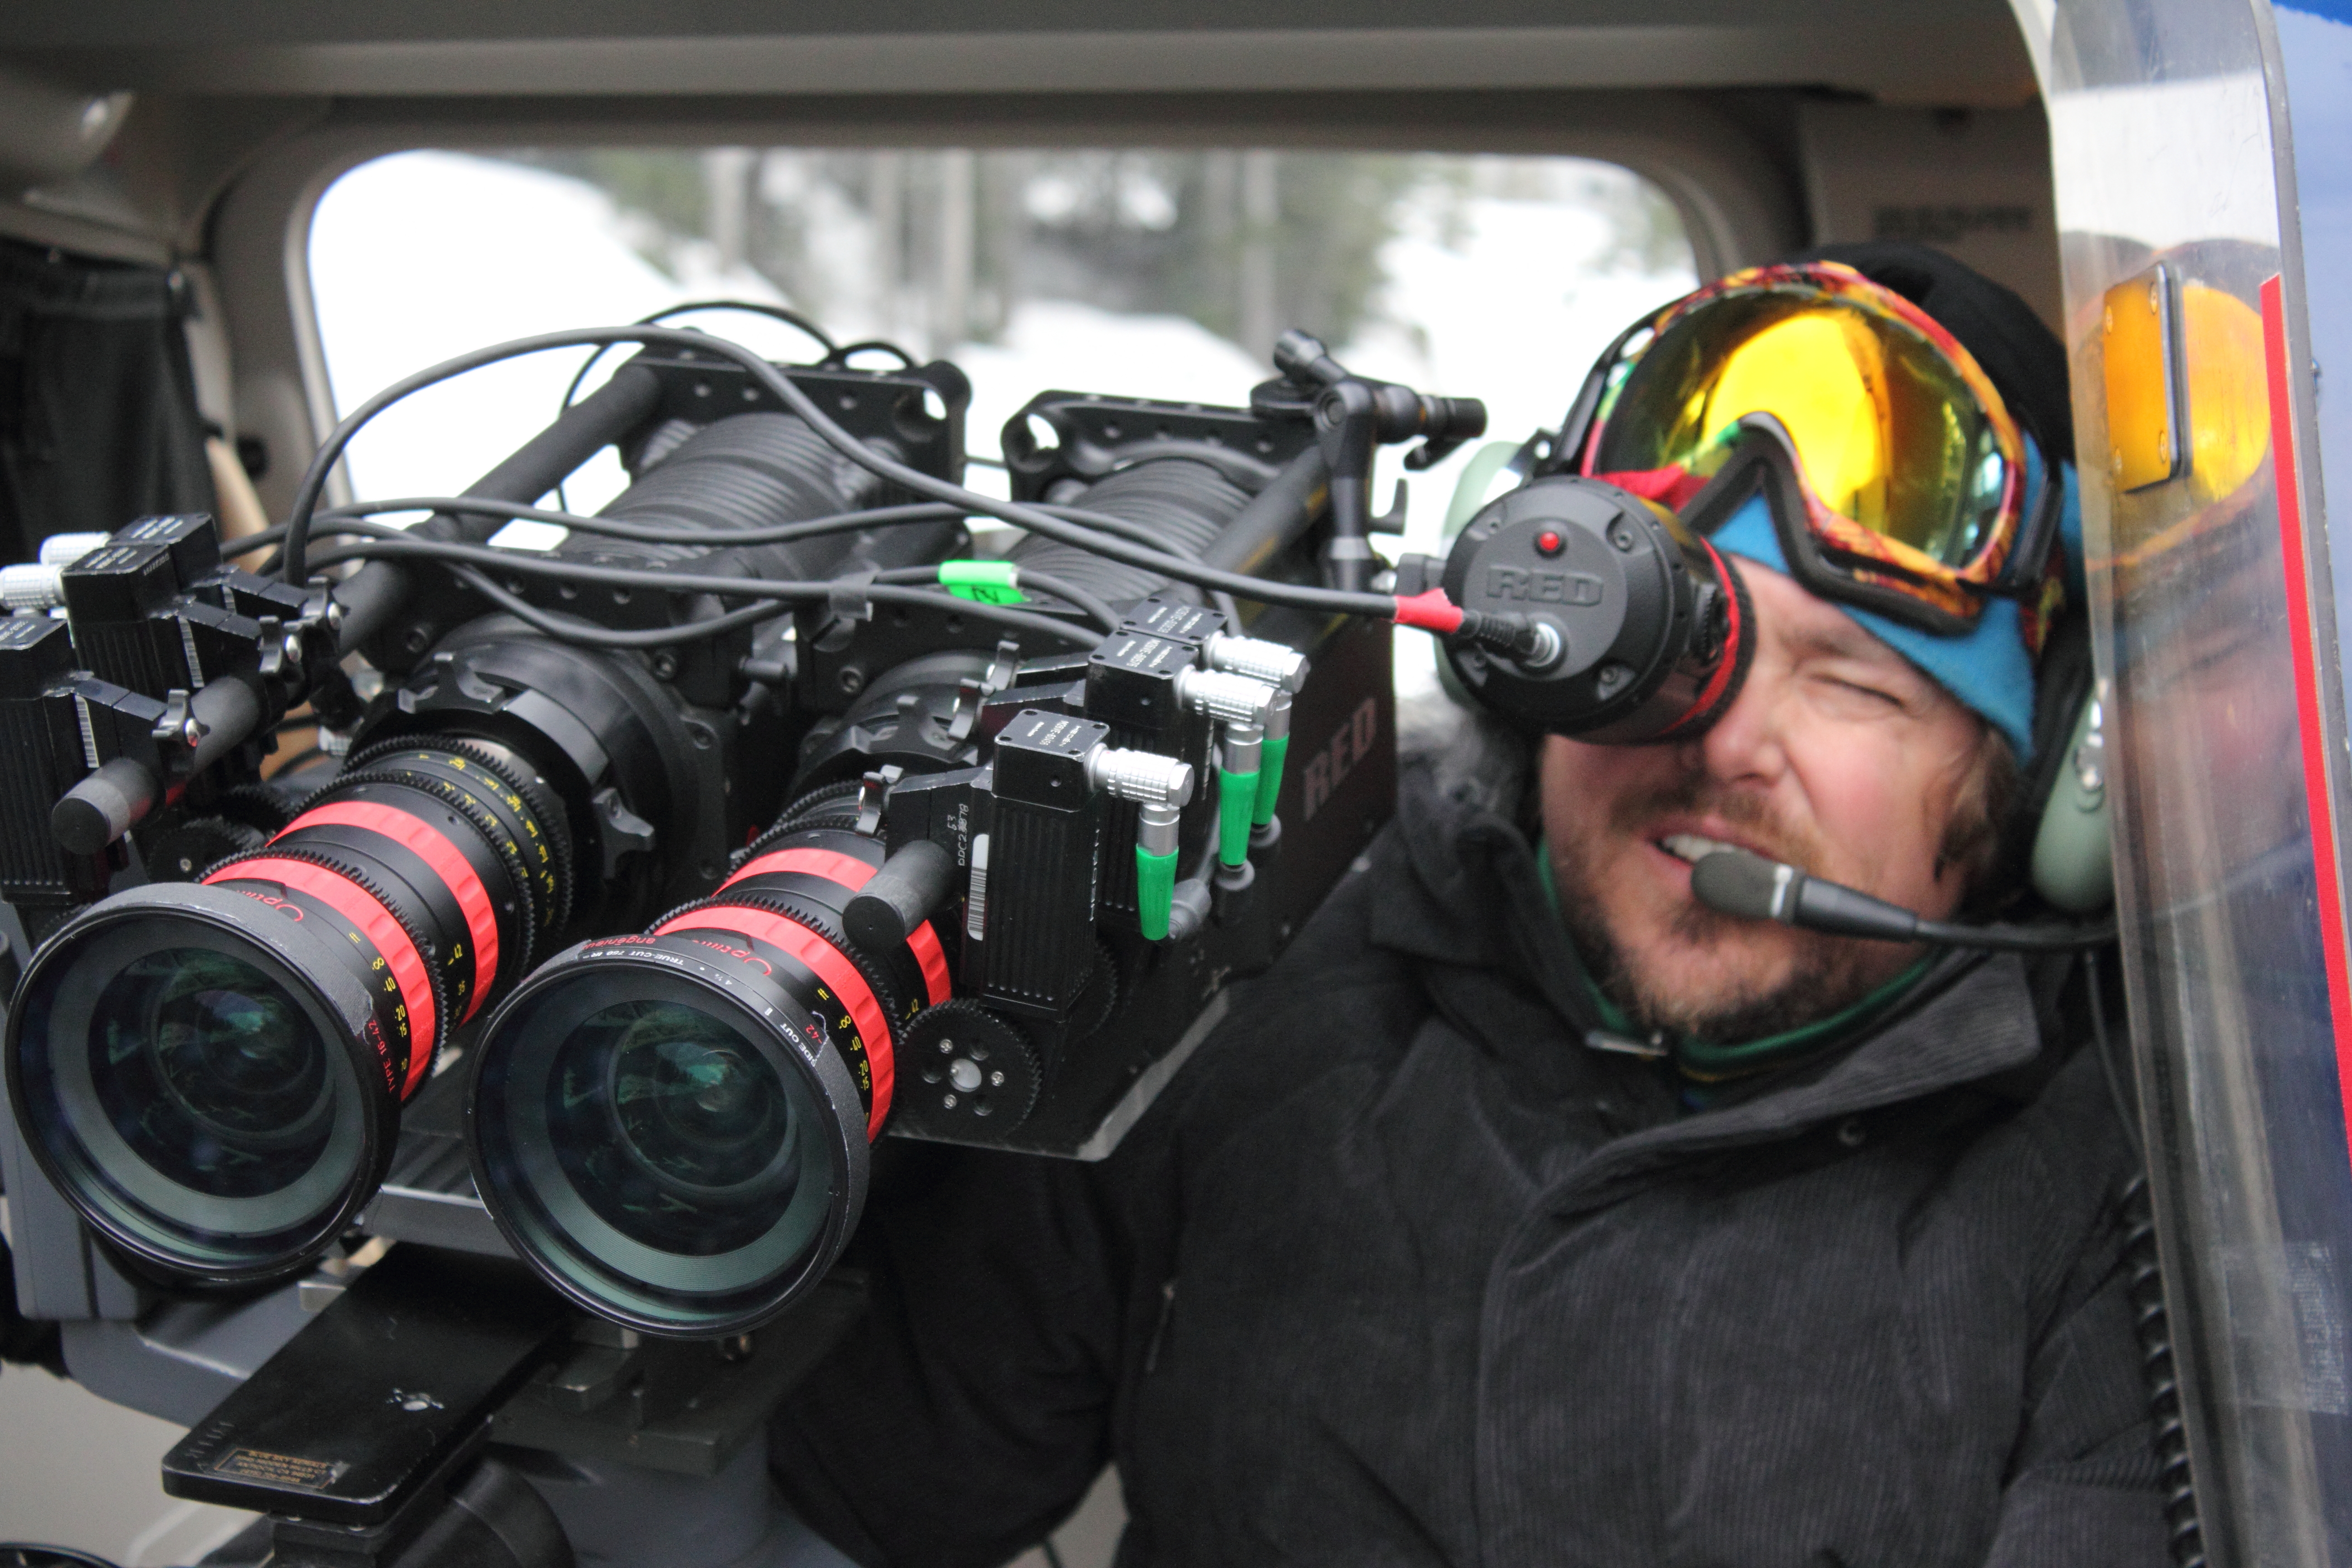 Todd Jones with Dual RED One Cameras